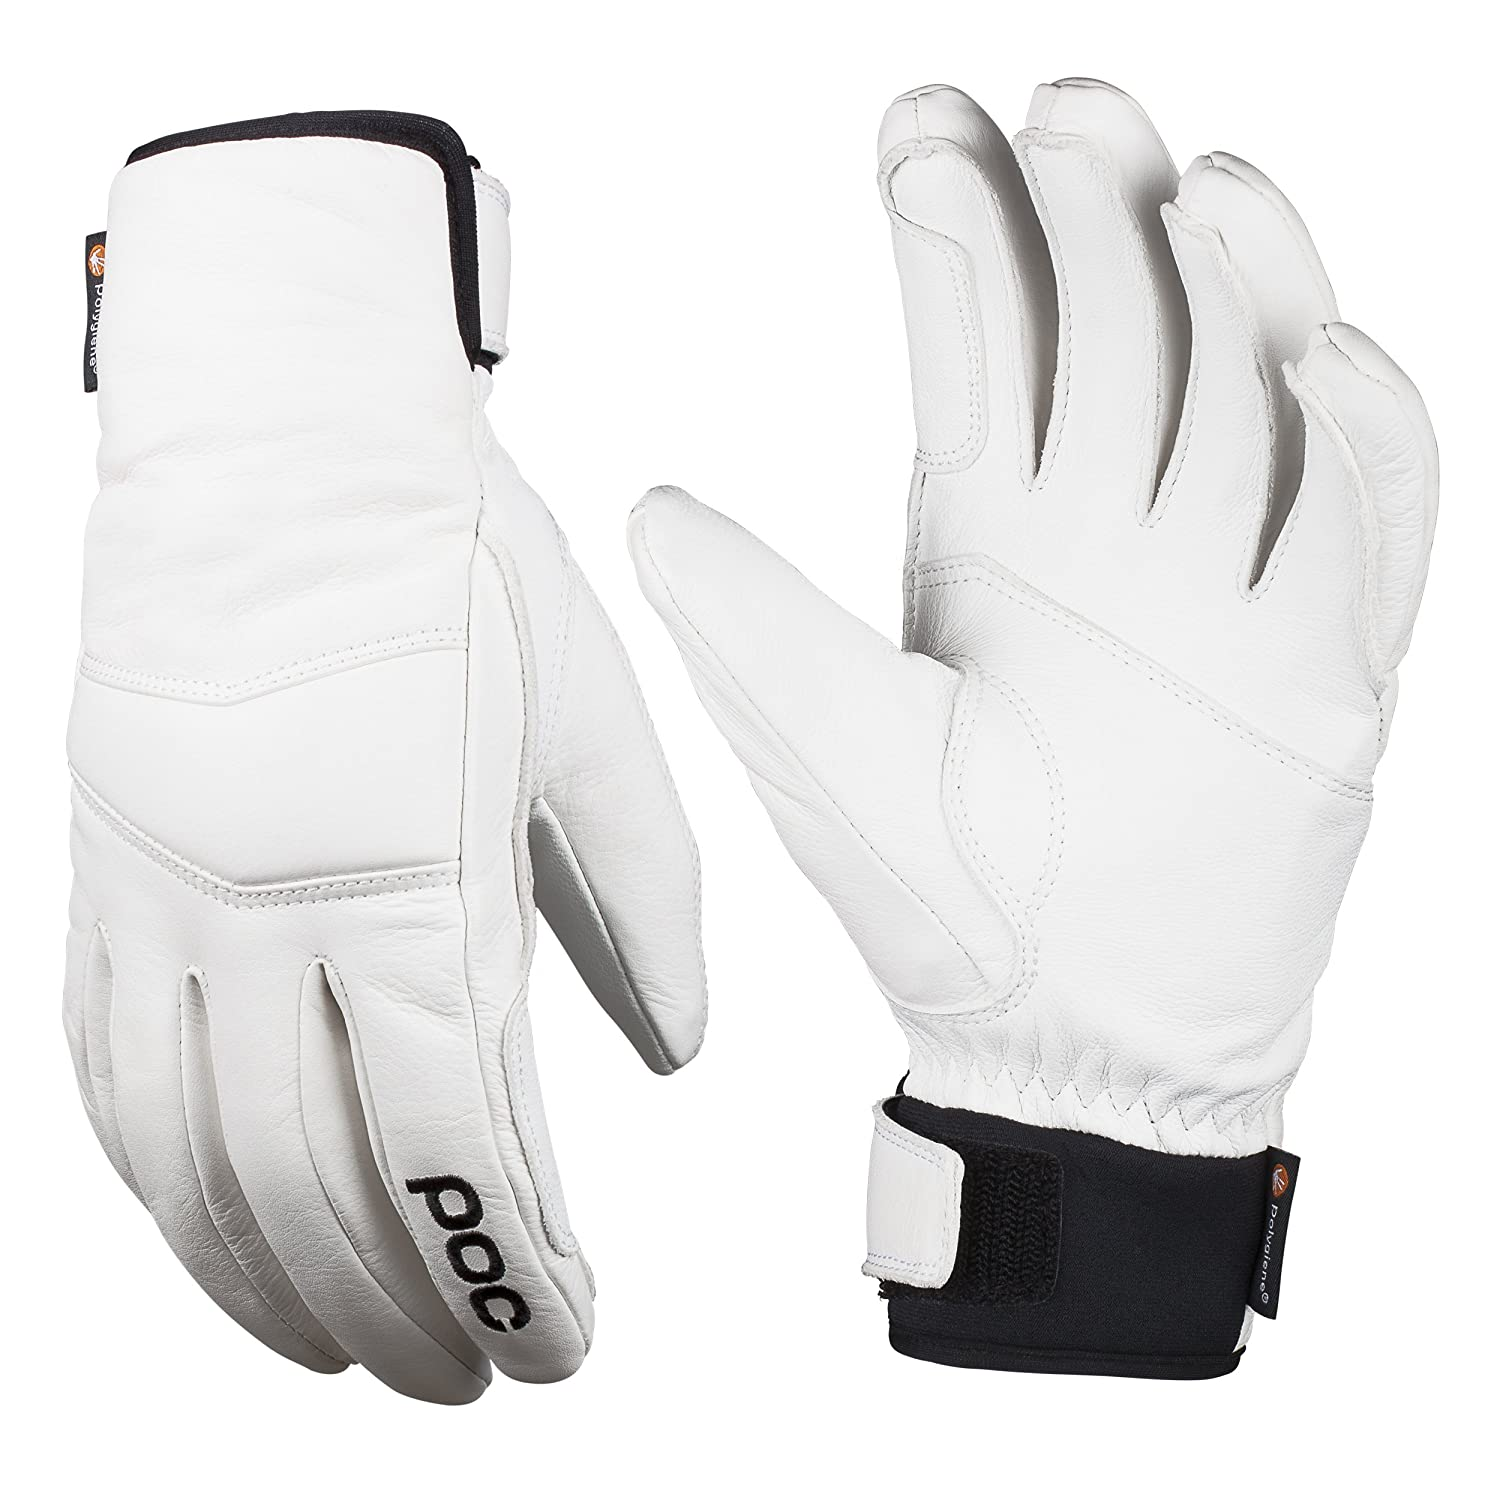 8f026b4a4d8 POC 30024 - Men s Skiing Gloves  Amazon.co.uk  Sports   Outdoors